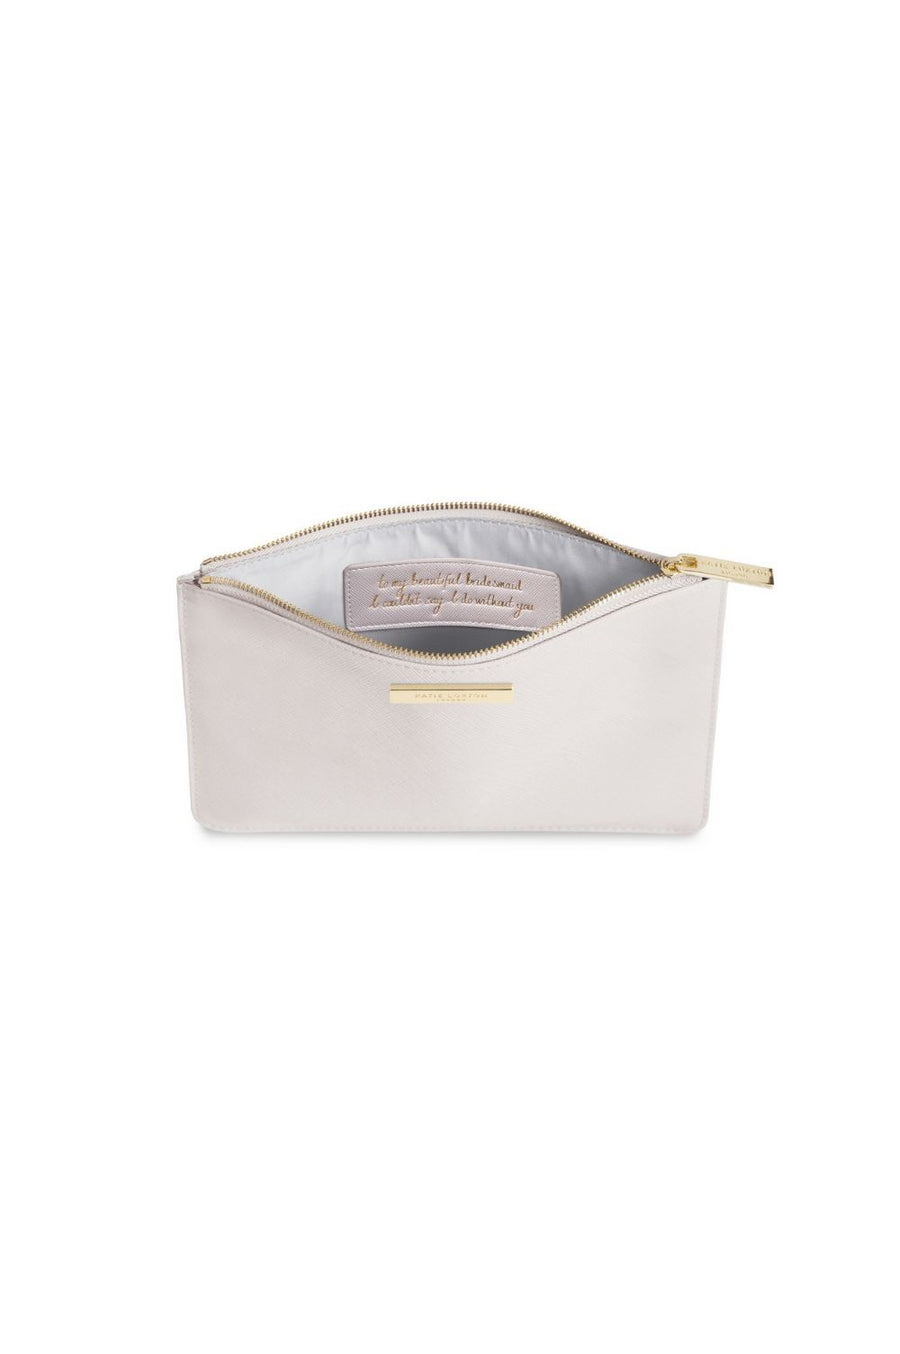 Katie Loxton 'Bridesmaid' Secret Message Pouch